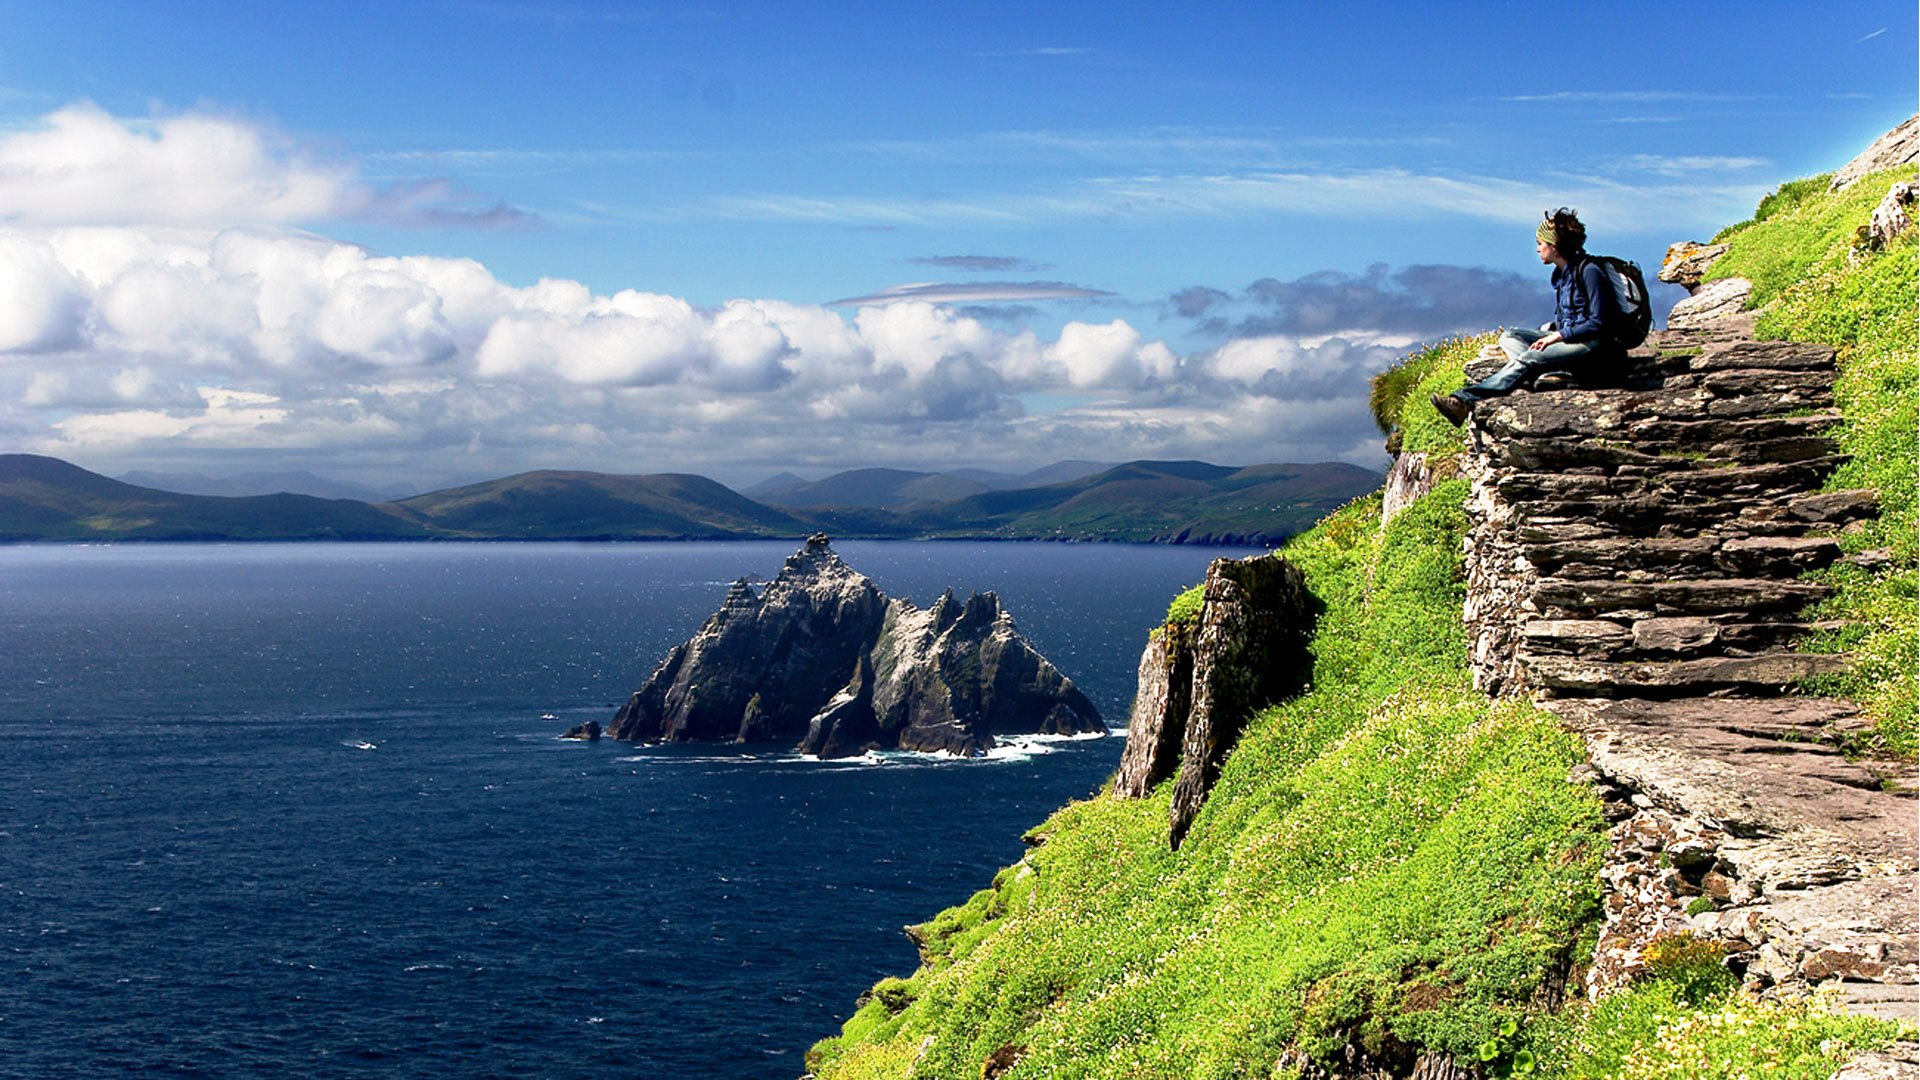 Bing Hd Wallpaper Fall Skellig Islands What To Know Before You Go Experience